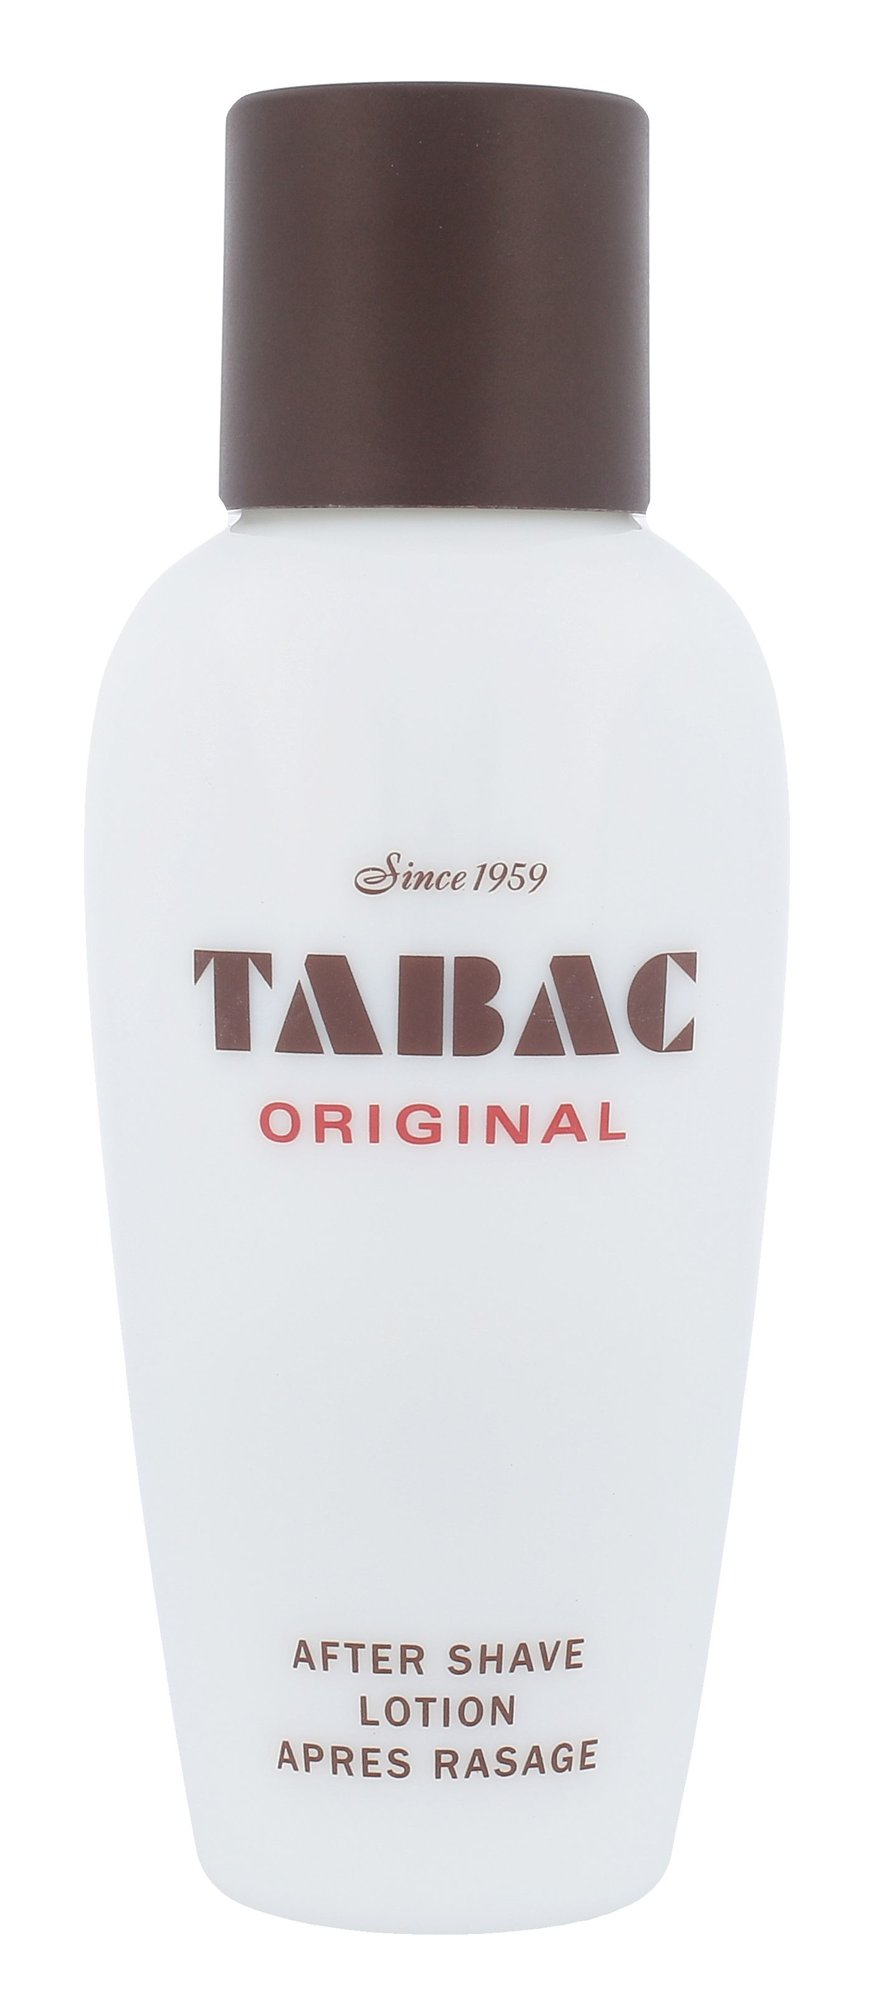 TABAC Original Aftershave 200ml